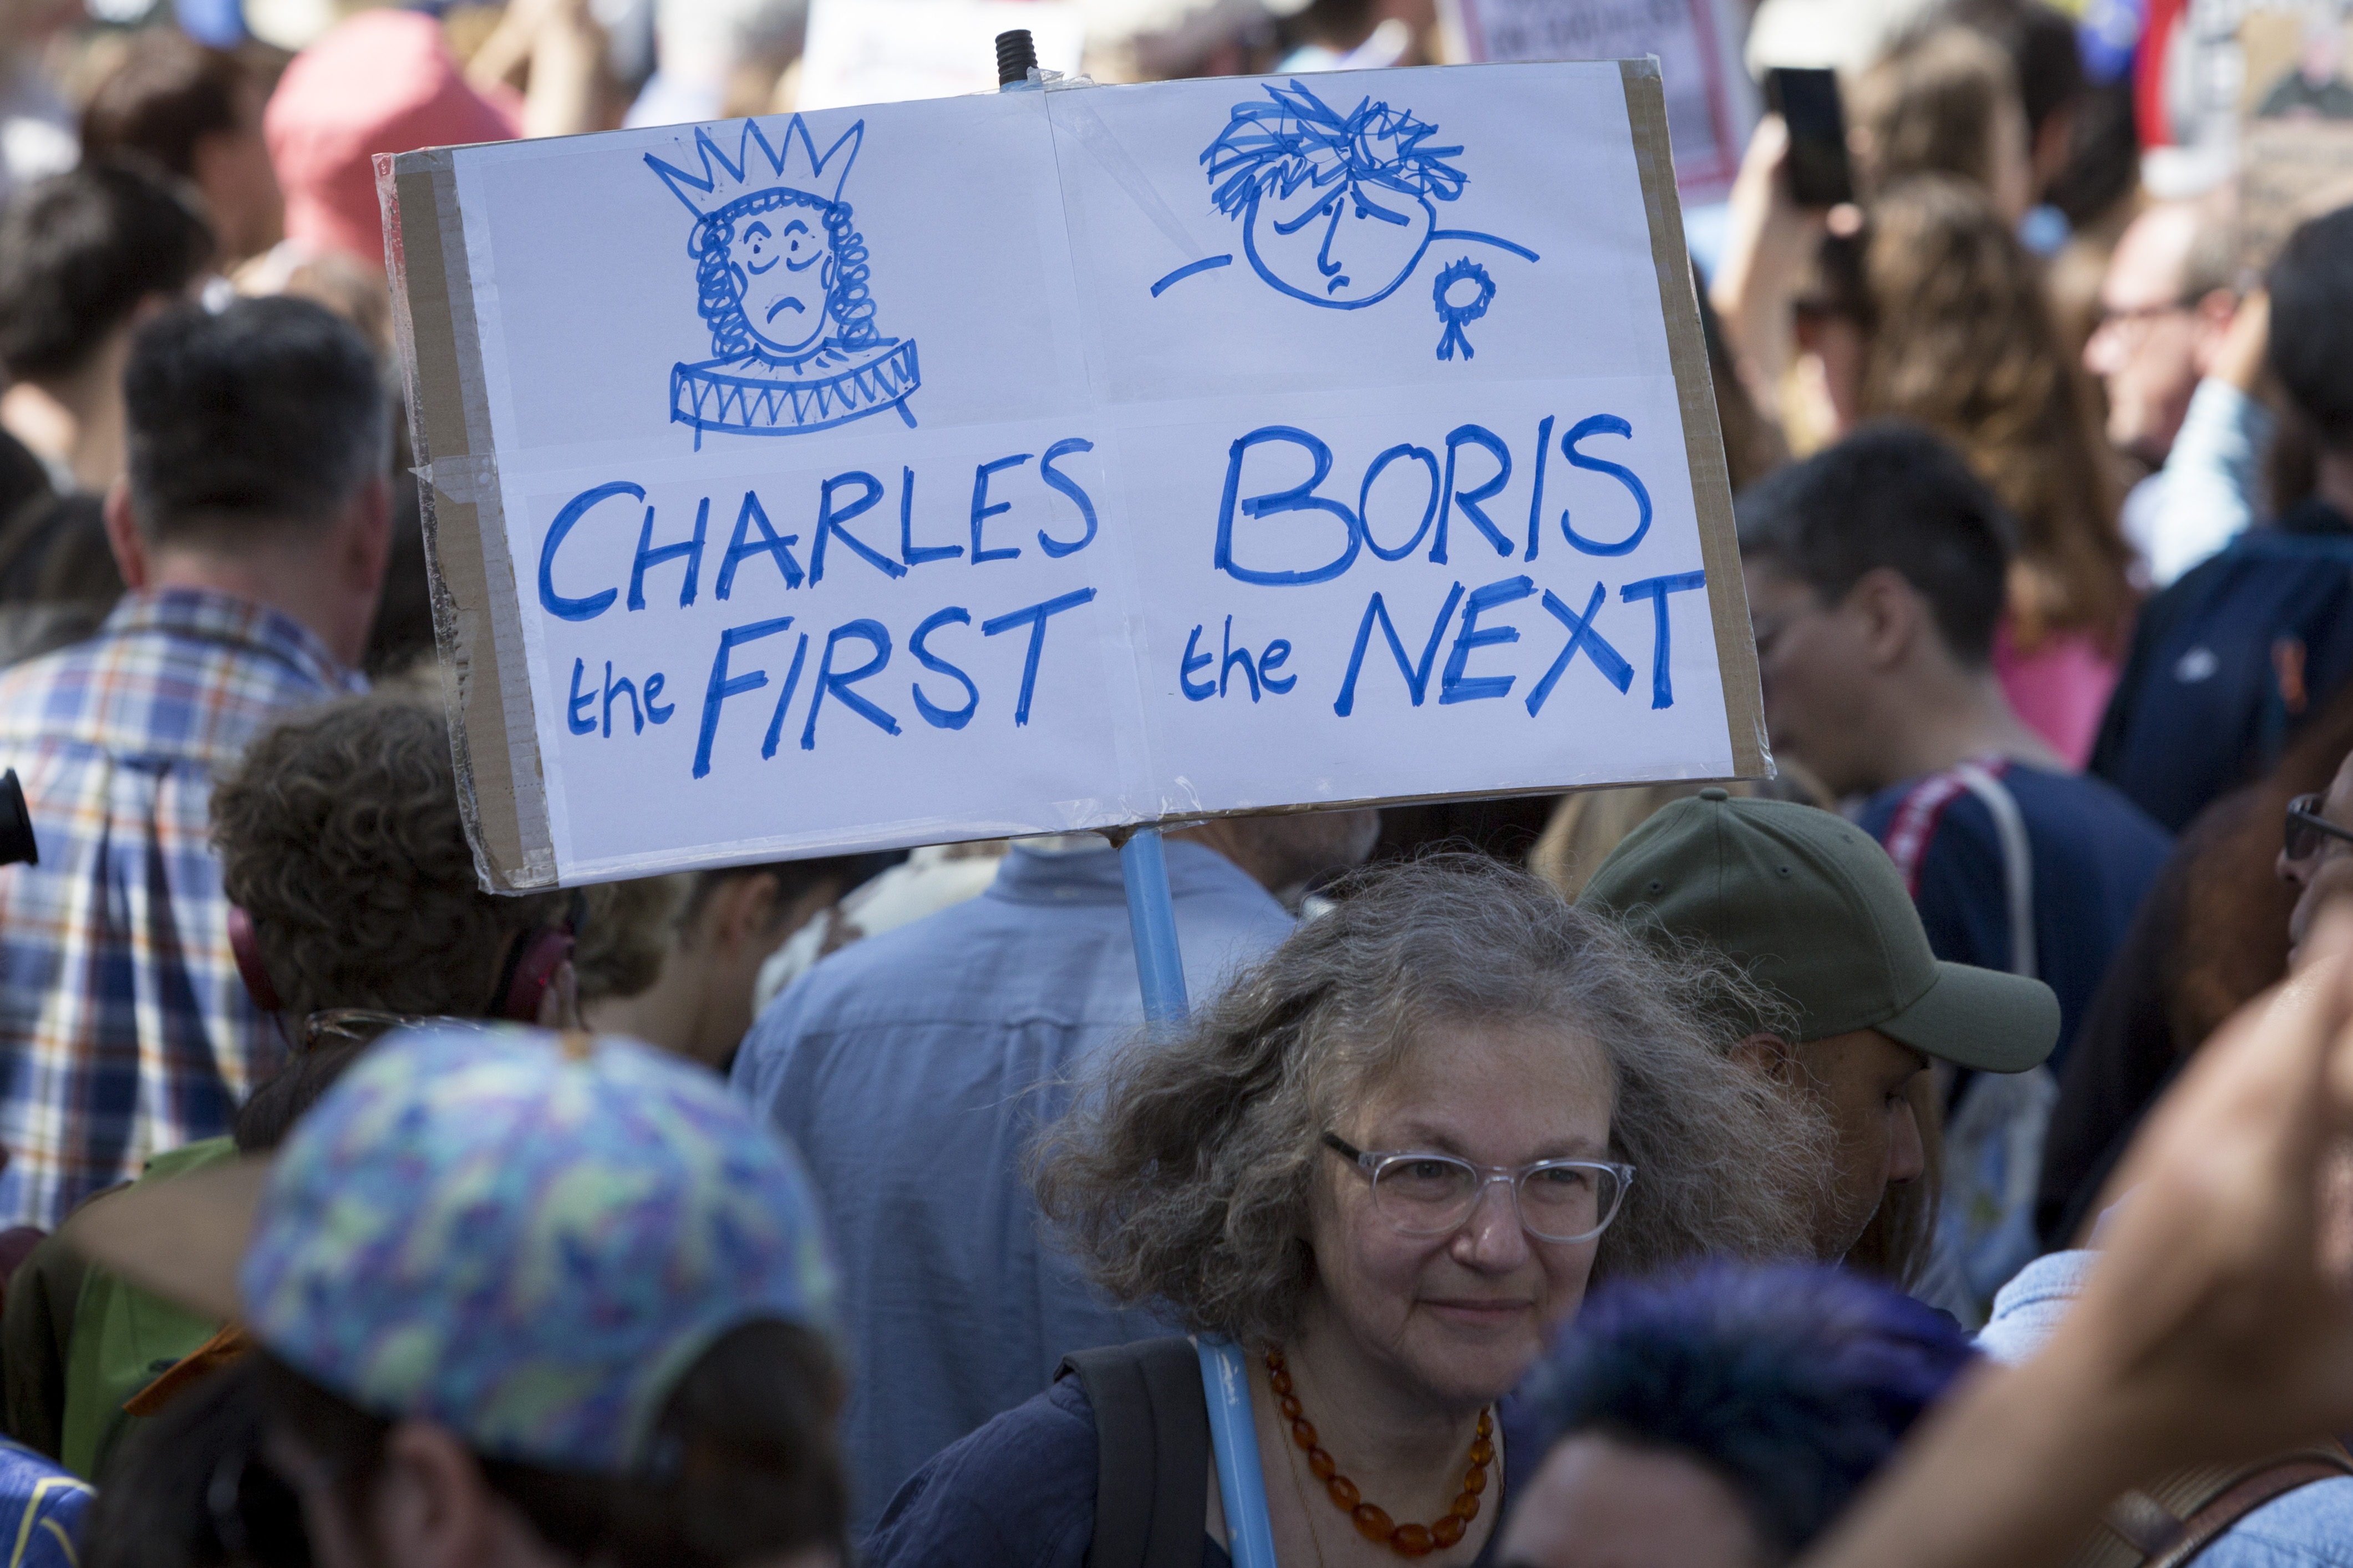 With a reference to the English Civil War which saw King Charles suspending parliament then eventual;ly being executed, pro-EU Remain protesters march to 'Stop the Coup' in Whitehall, near Downing Street, at the end of a week that saw Prime Minister Boris Johnson ask Queen Elizabeth for permission to suspend (prorogue) the British Parliament during the final stages of his Brexit negotiations with the European Union, in Brussels, on 31st August 2019, in Westminster, London, England. (Photo by Richard Baker / In Pictures via Getty Images)